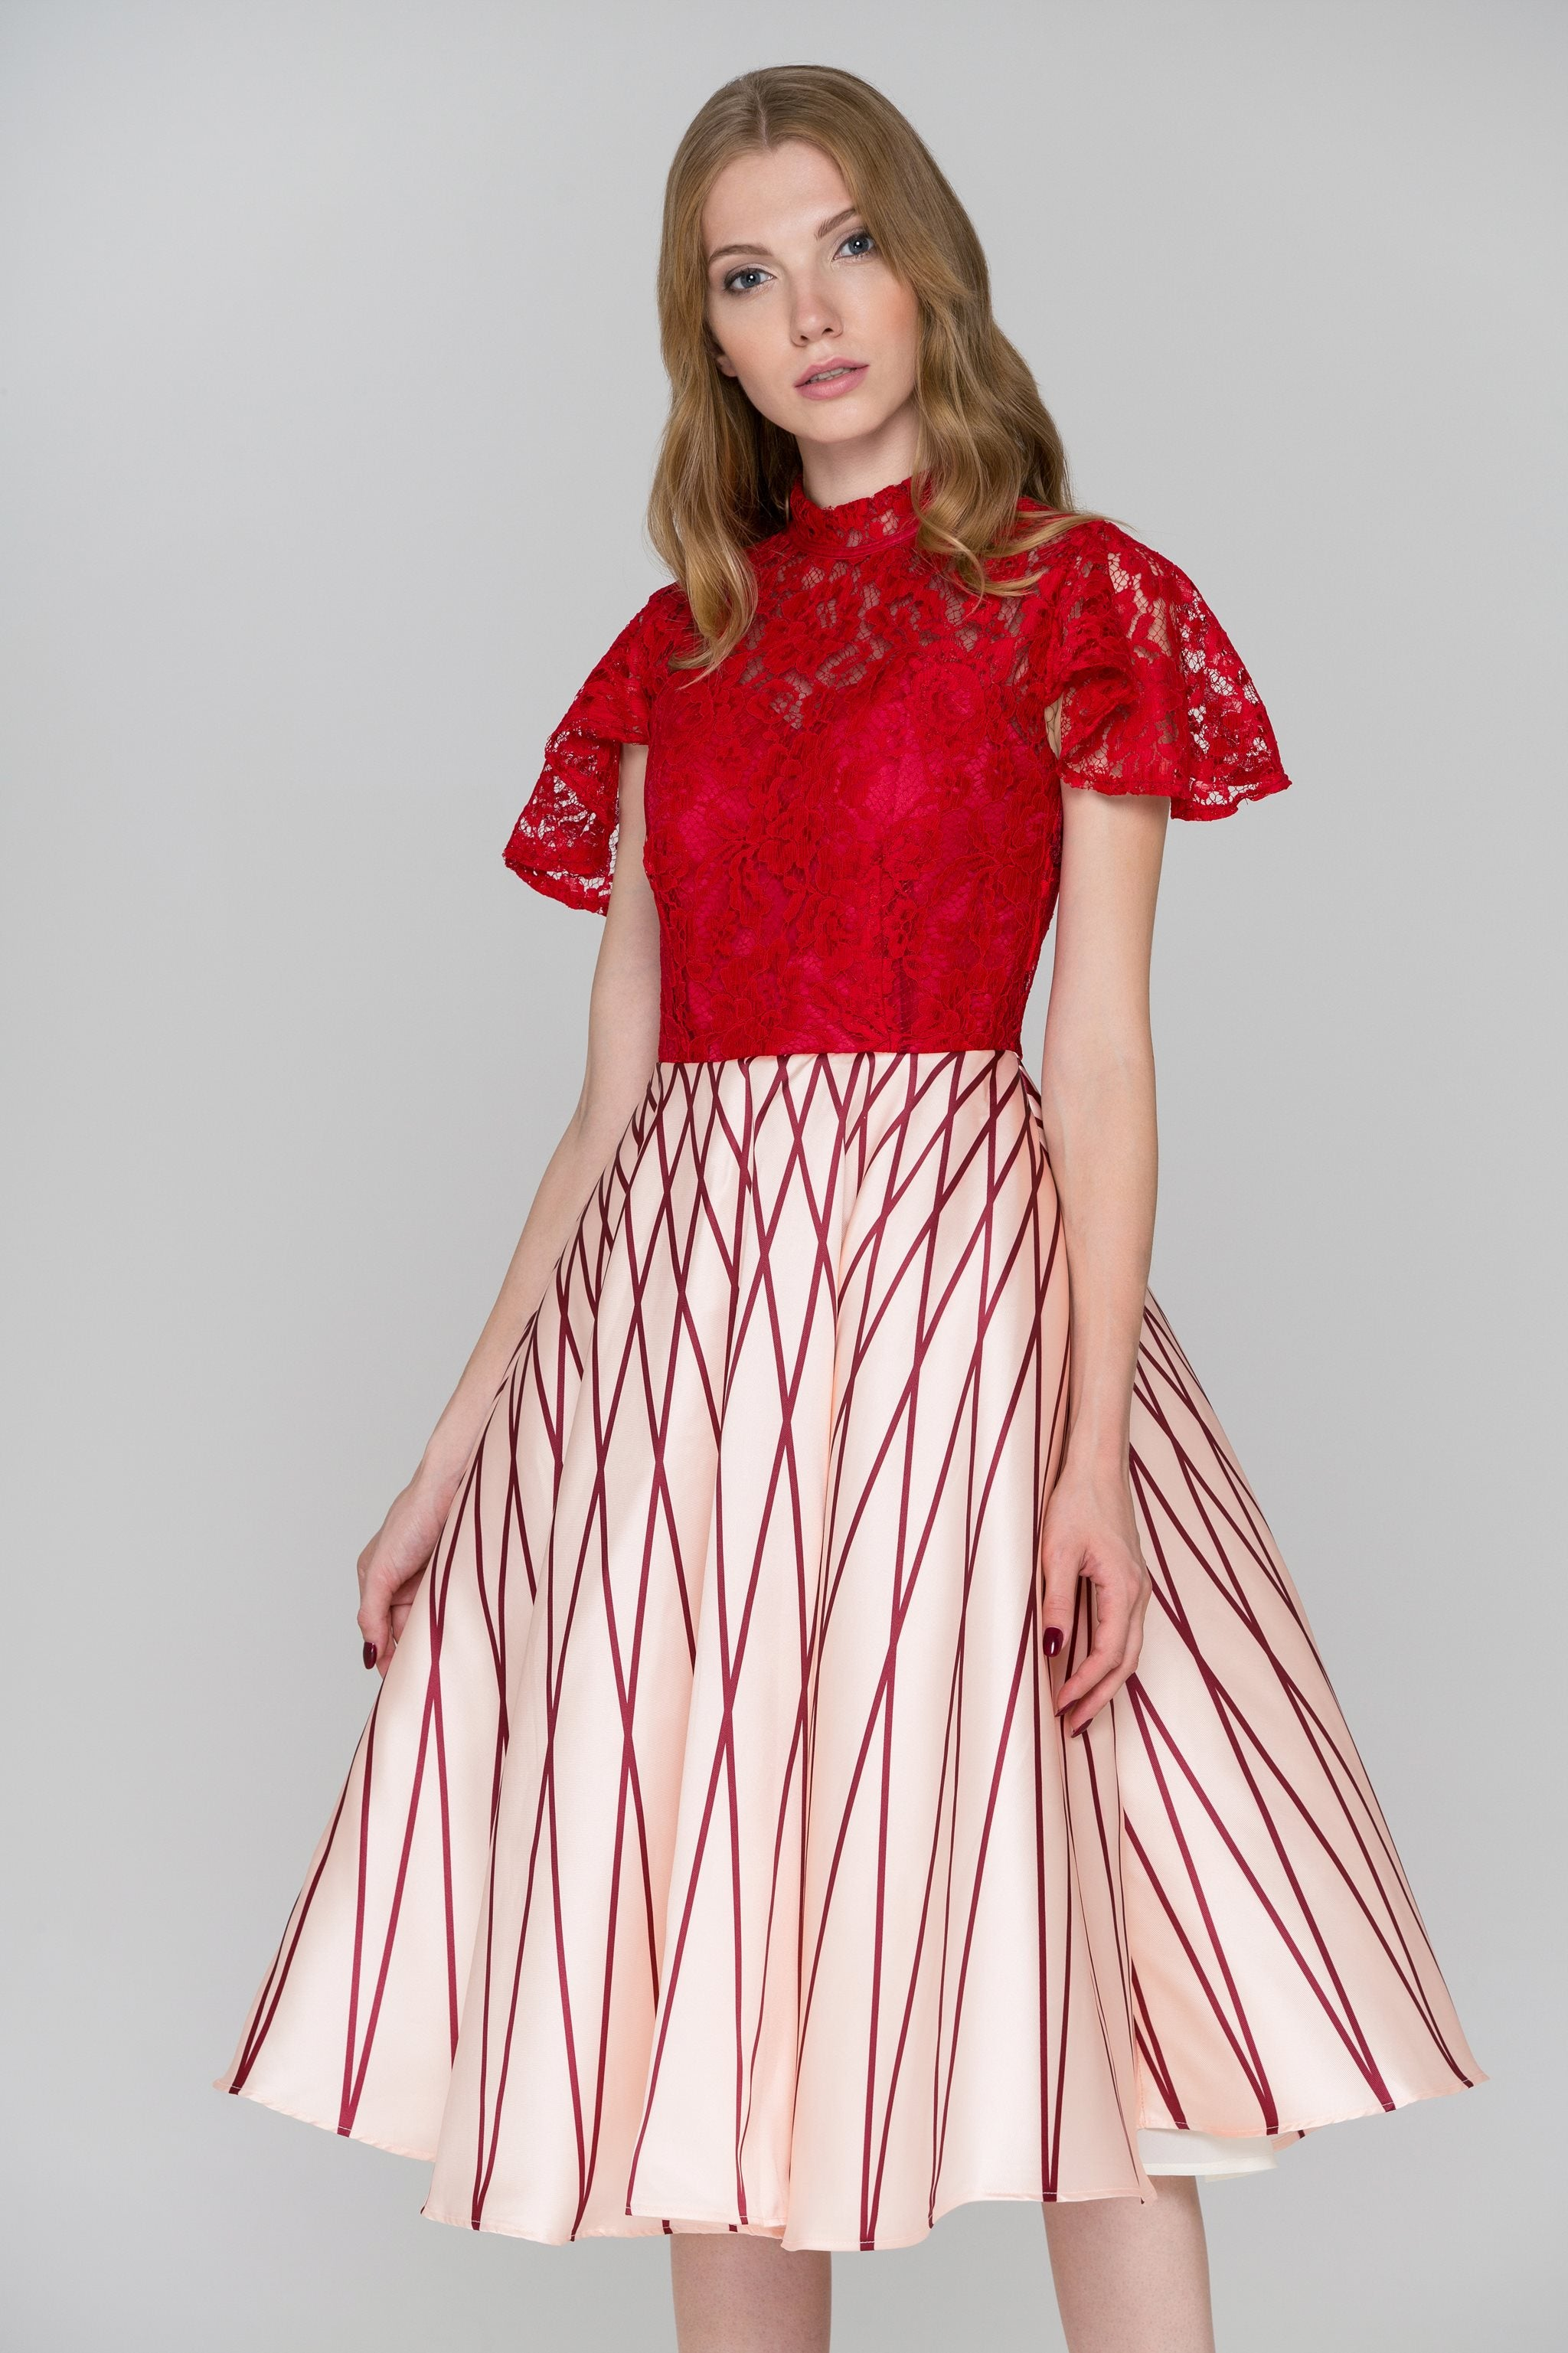 Red Lace Peach Skirt Midi Ball Gown Dress – OwnTheLooks